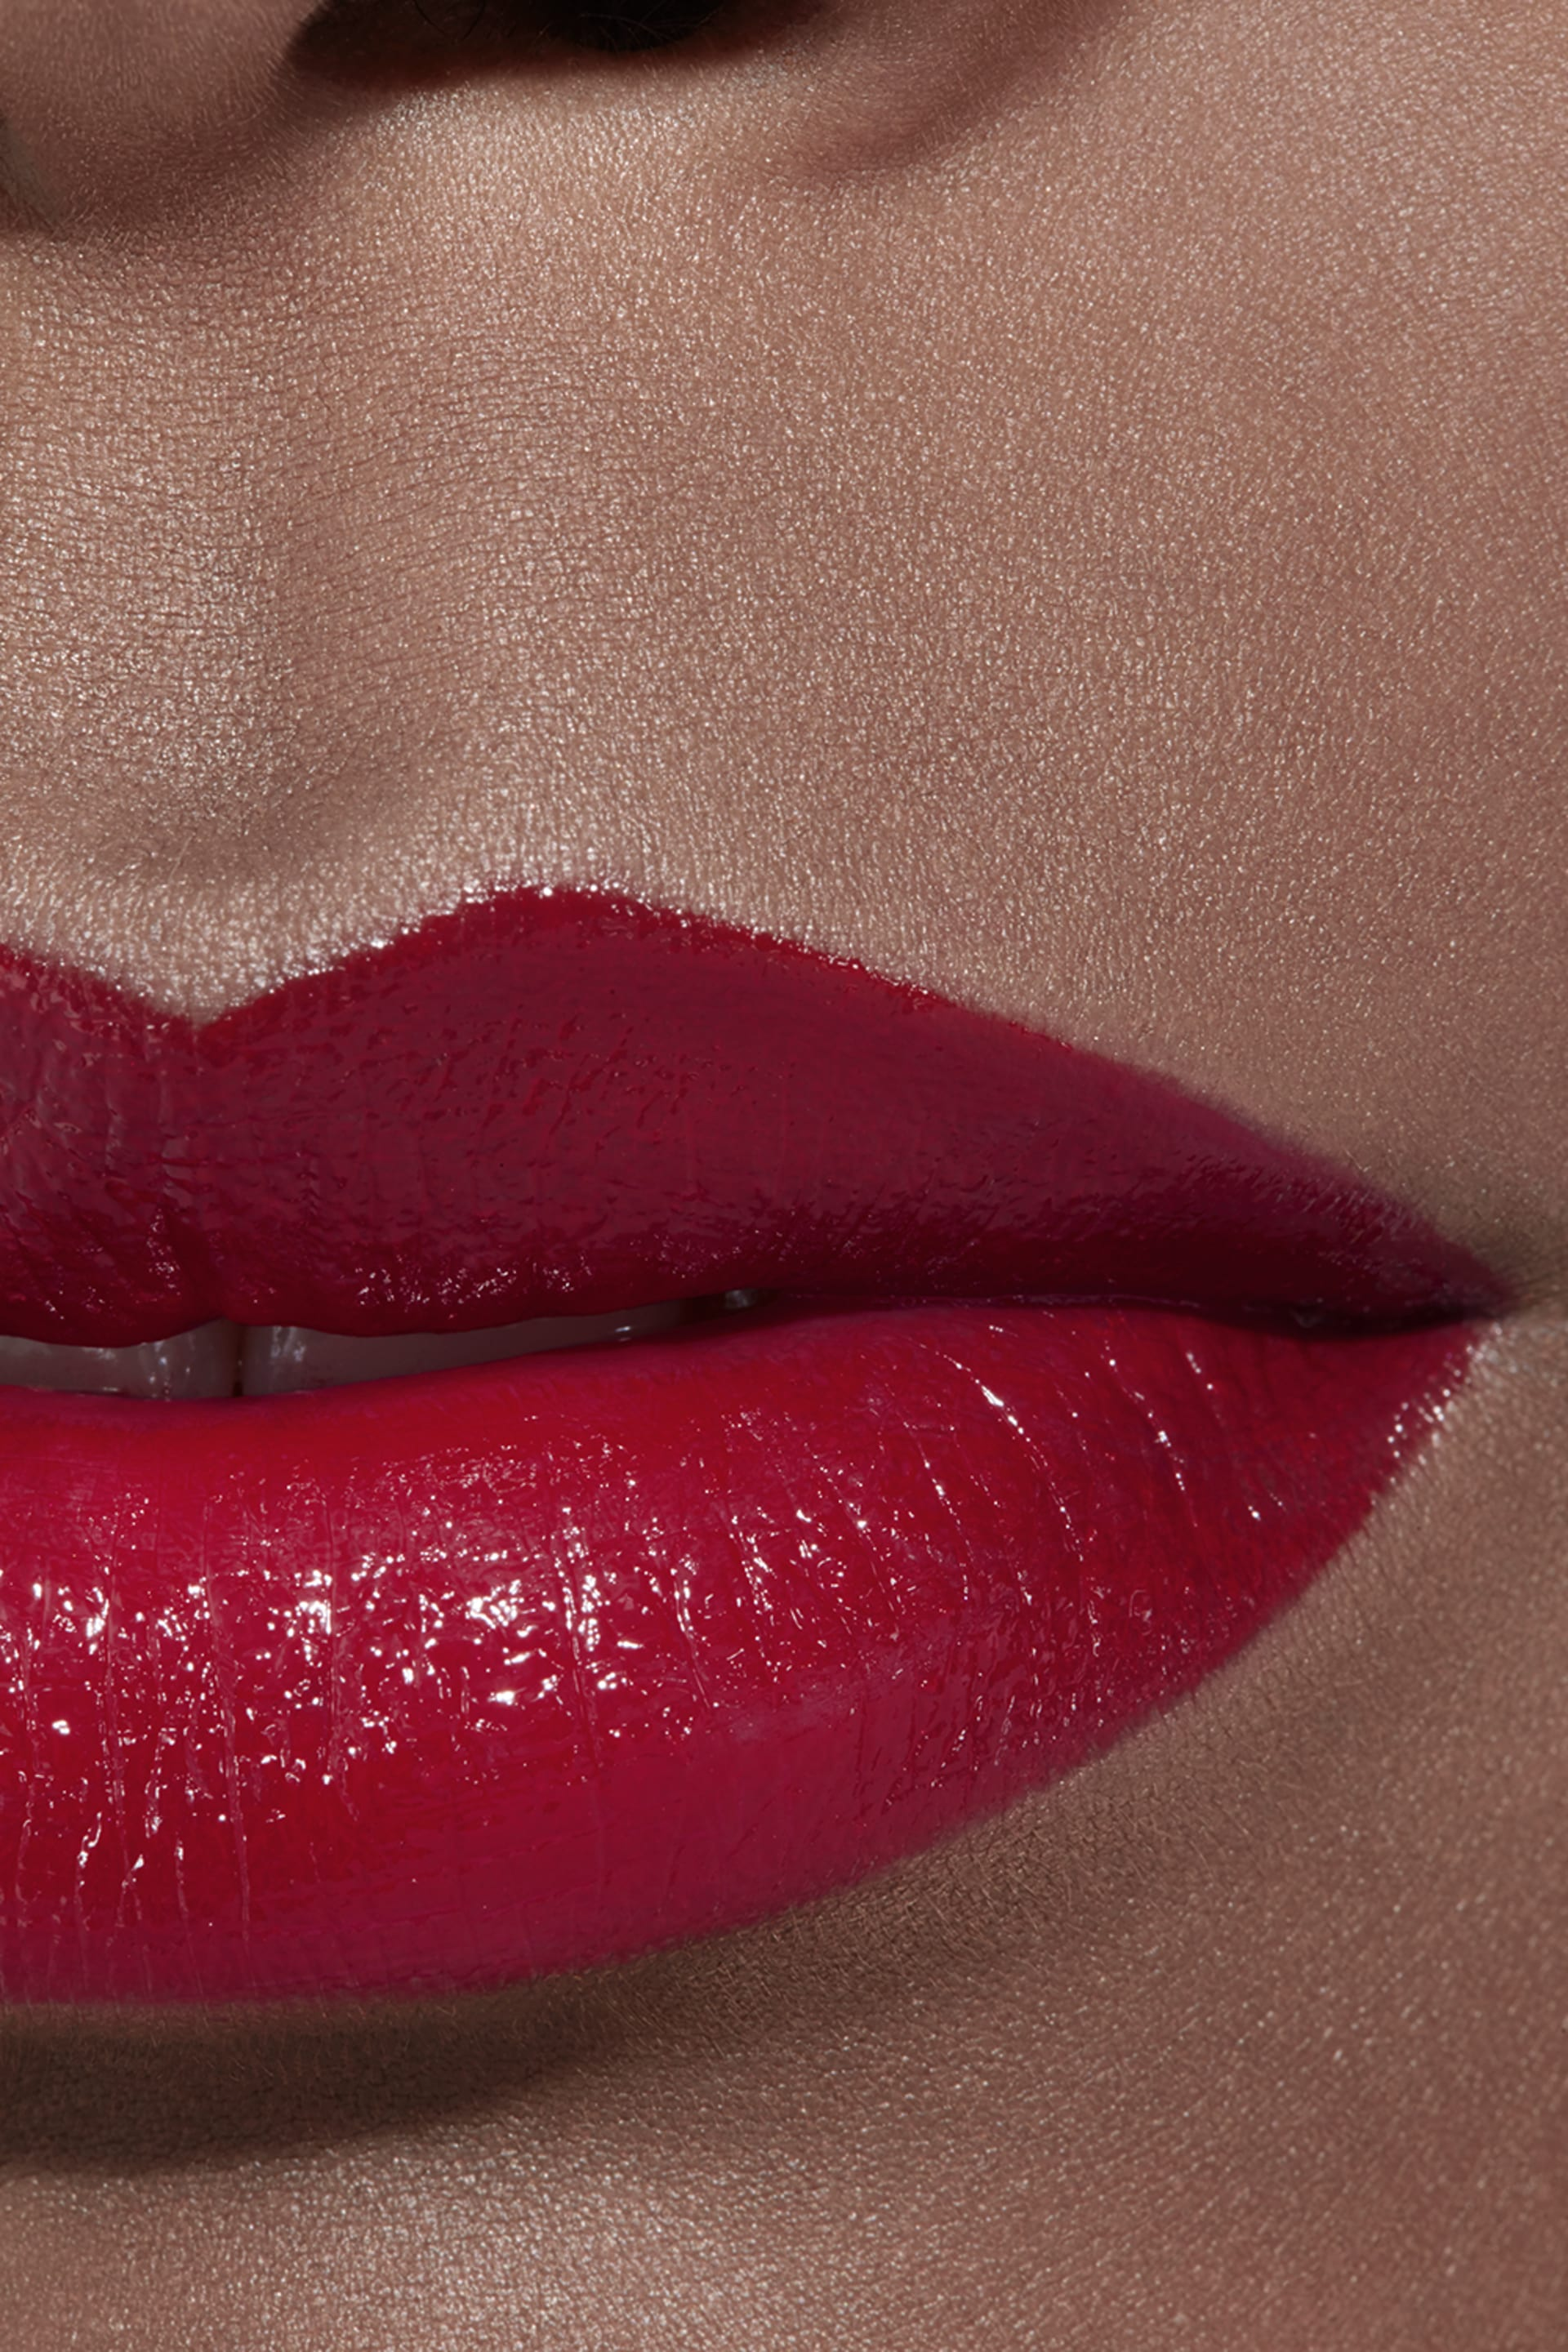 Application makeup visual 2 - ROUGE COCO 444 - GABRIELLE